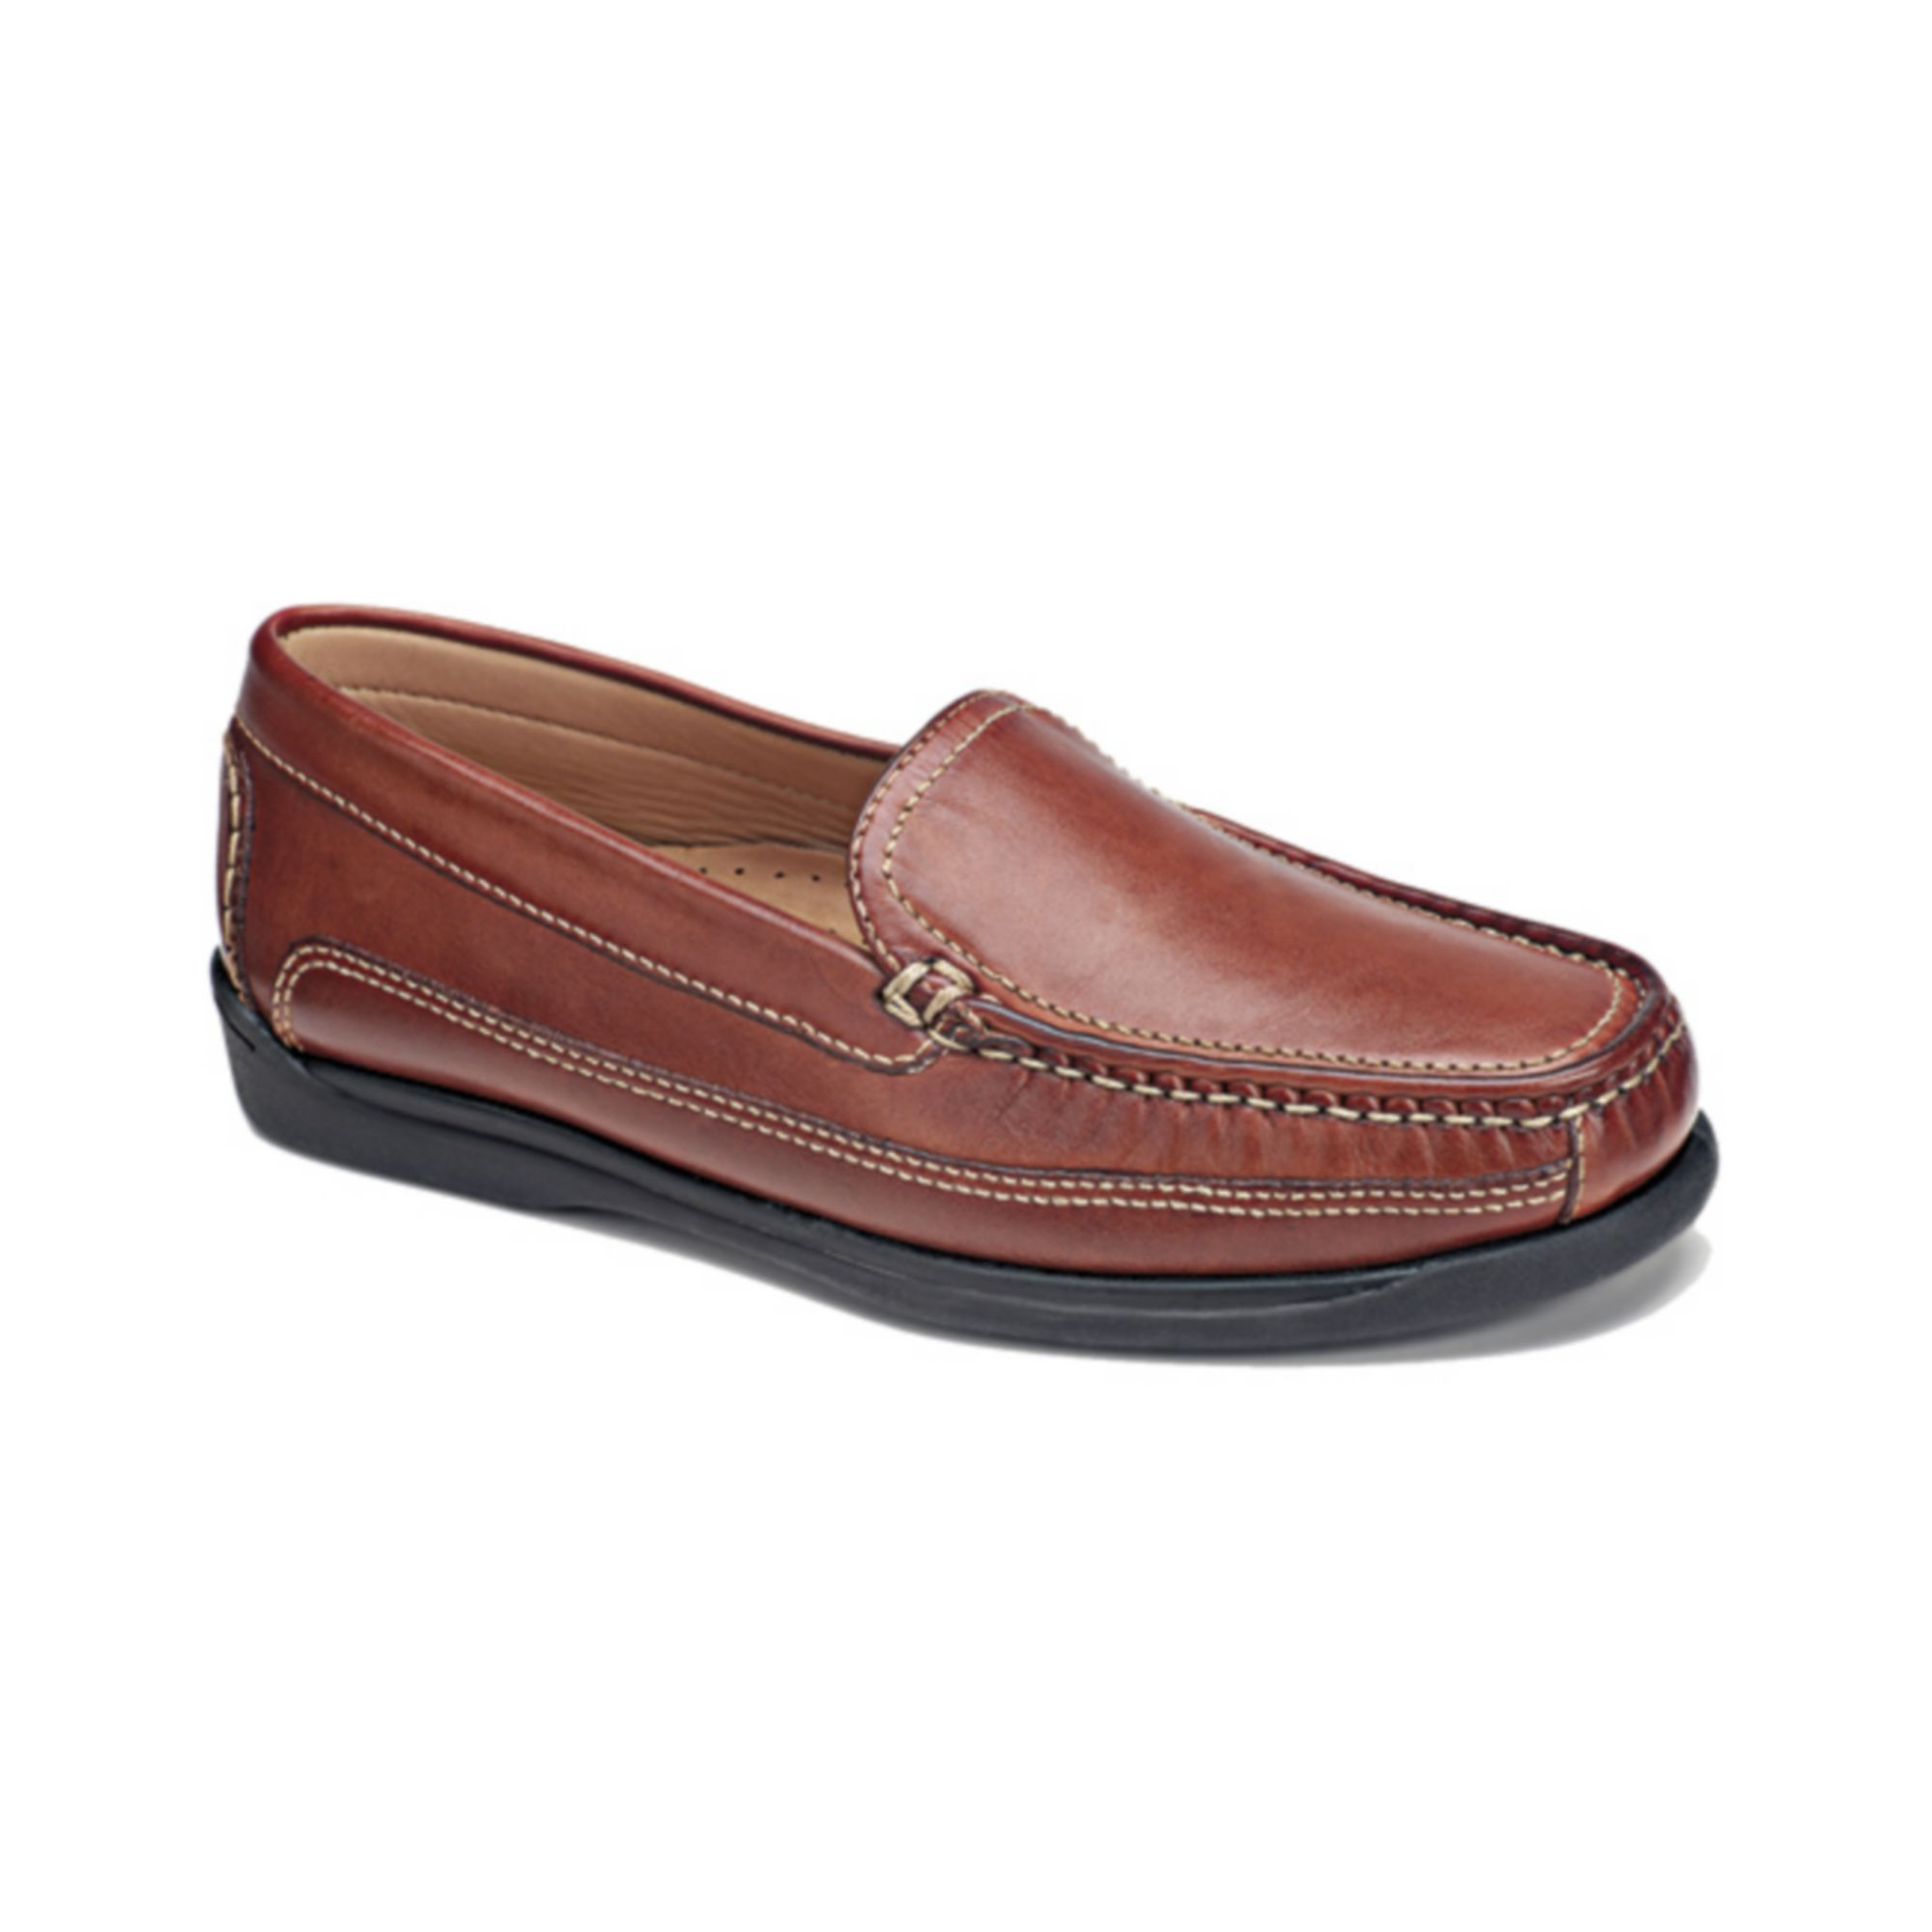 Dockers Catalina Moc Toe Loafers In Brown For Men Saddle